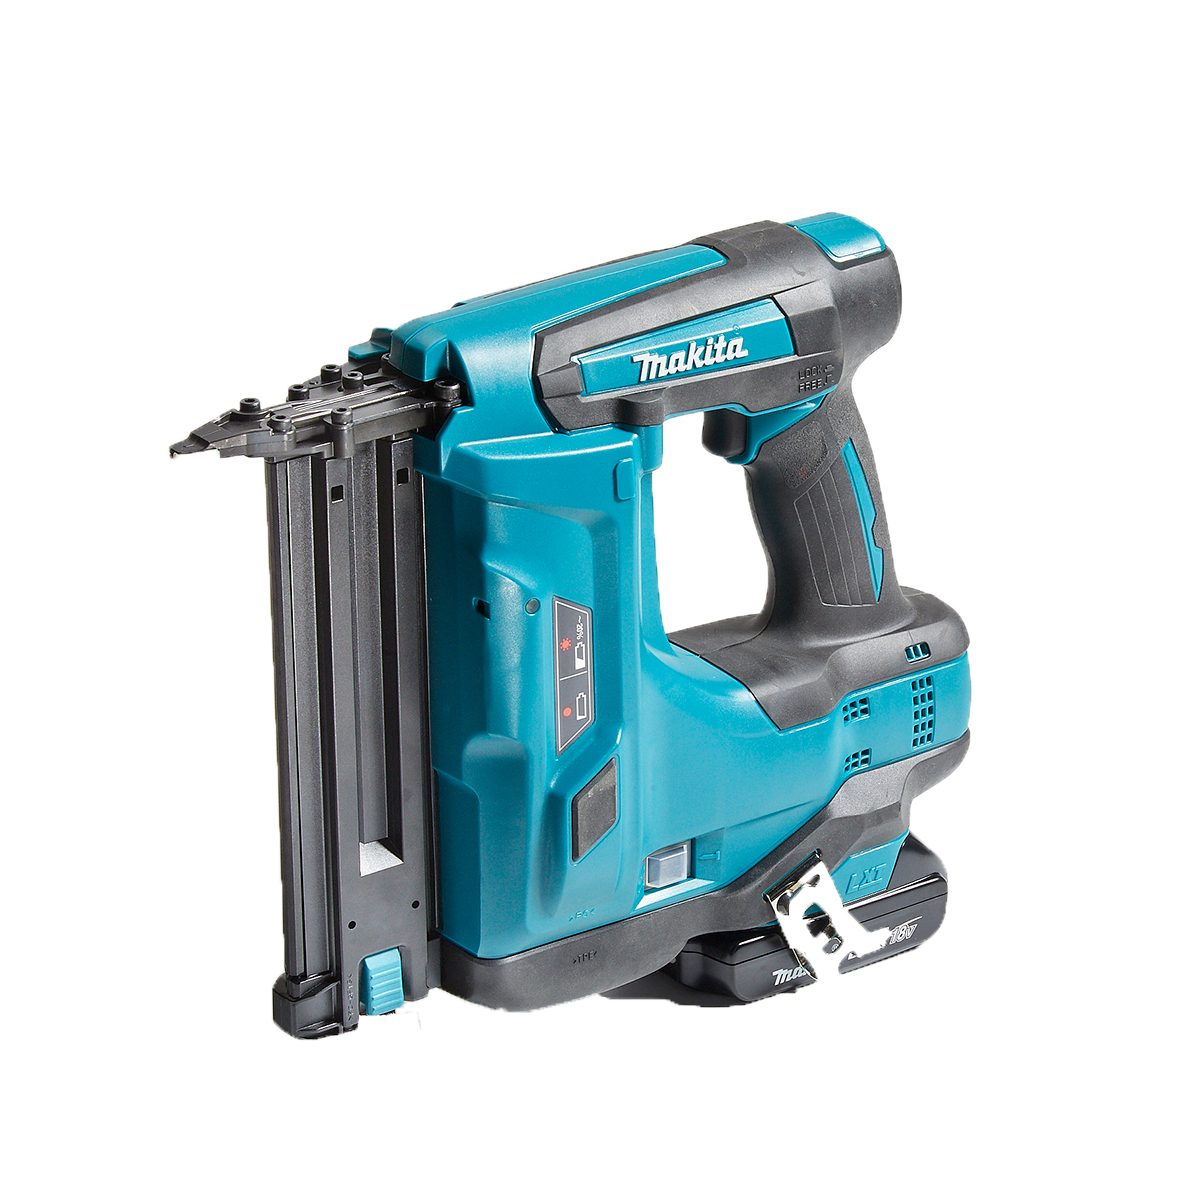 Makita Brad Nailer | Construction Pro Tips